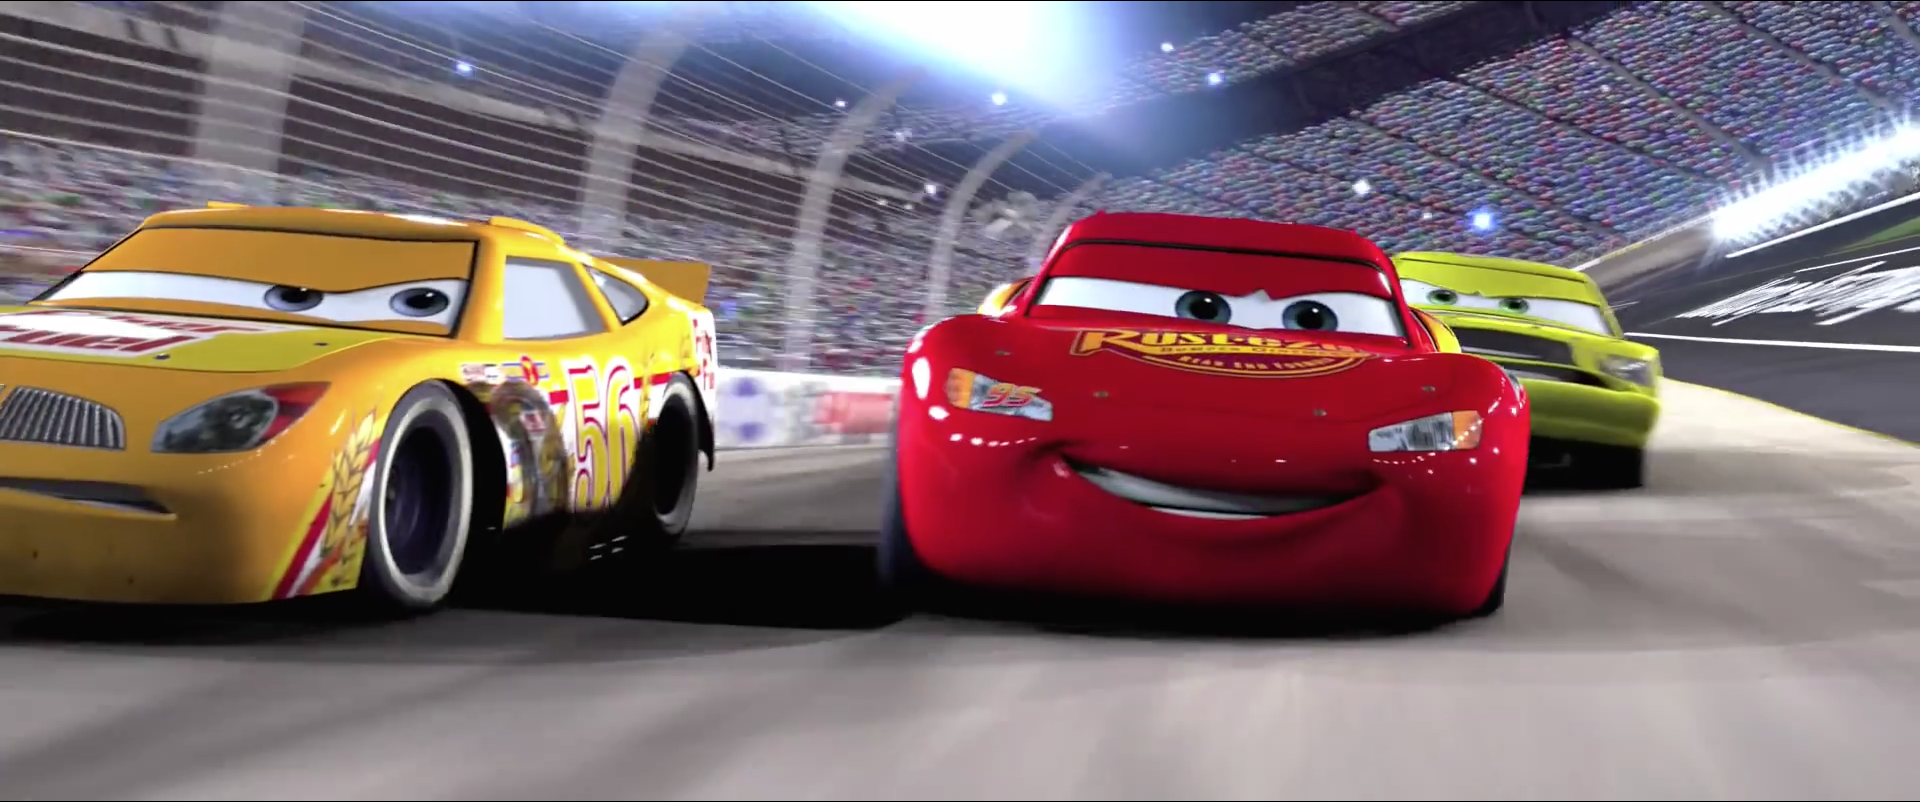 Pixar Releases First Trailer For Cars 3